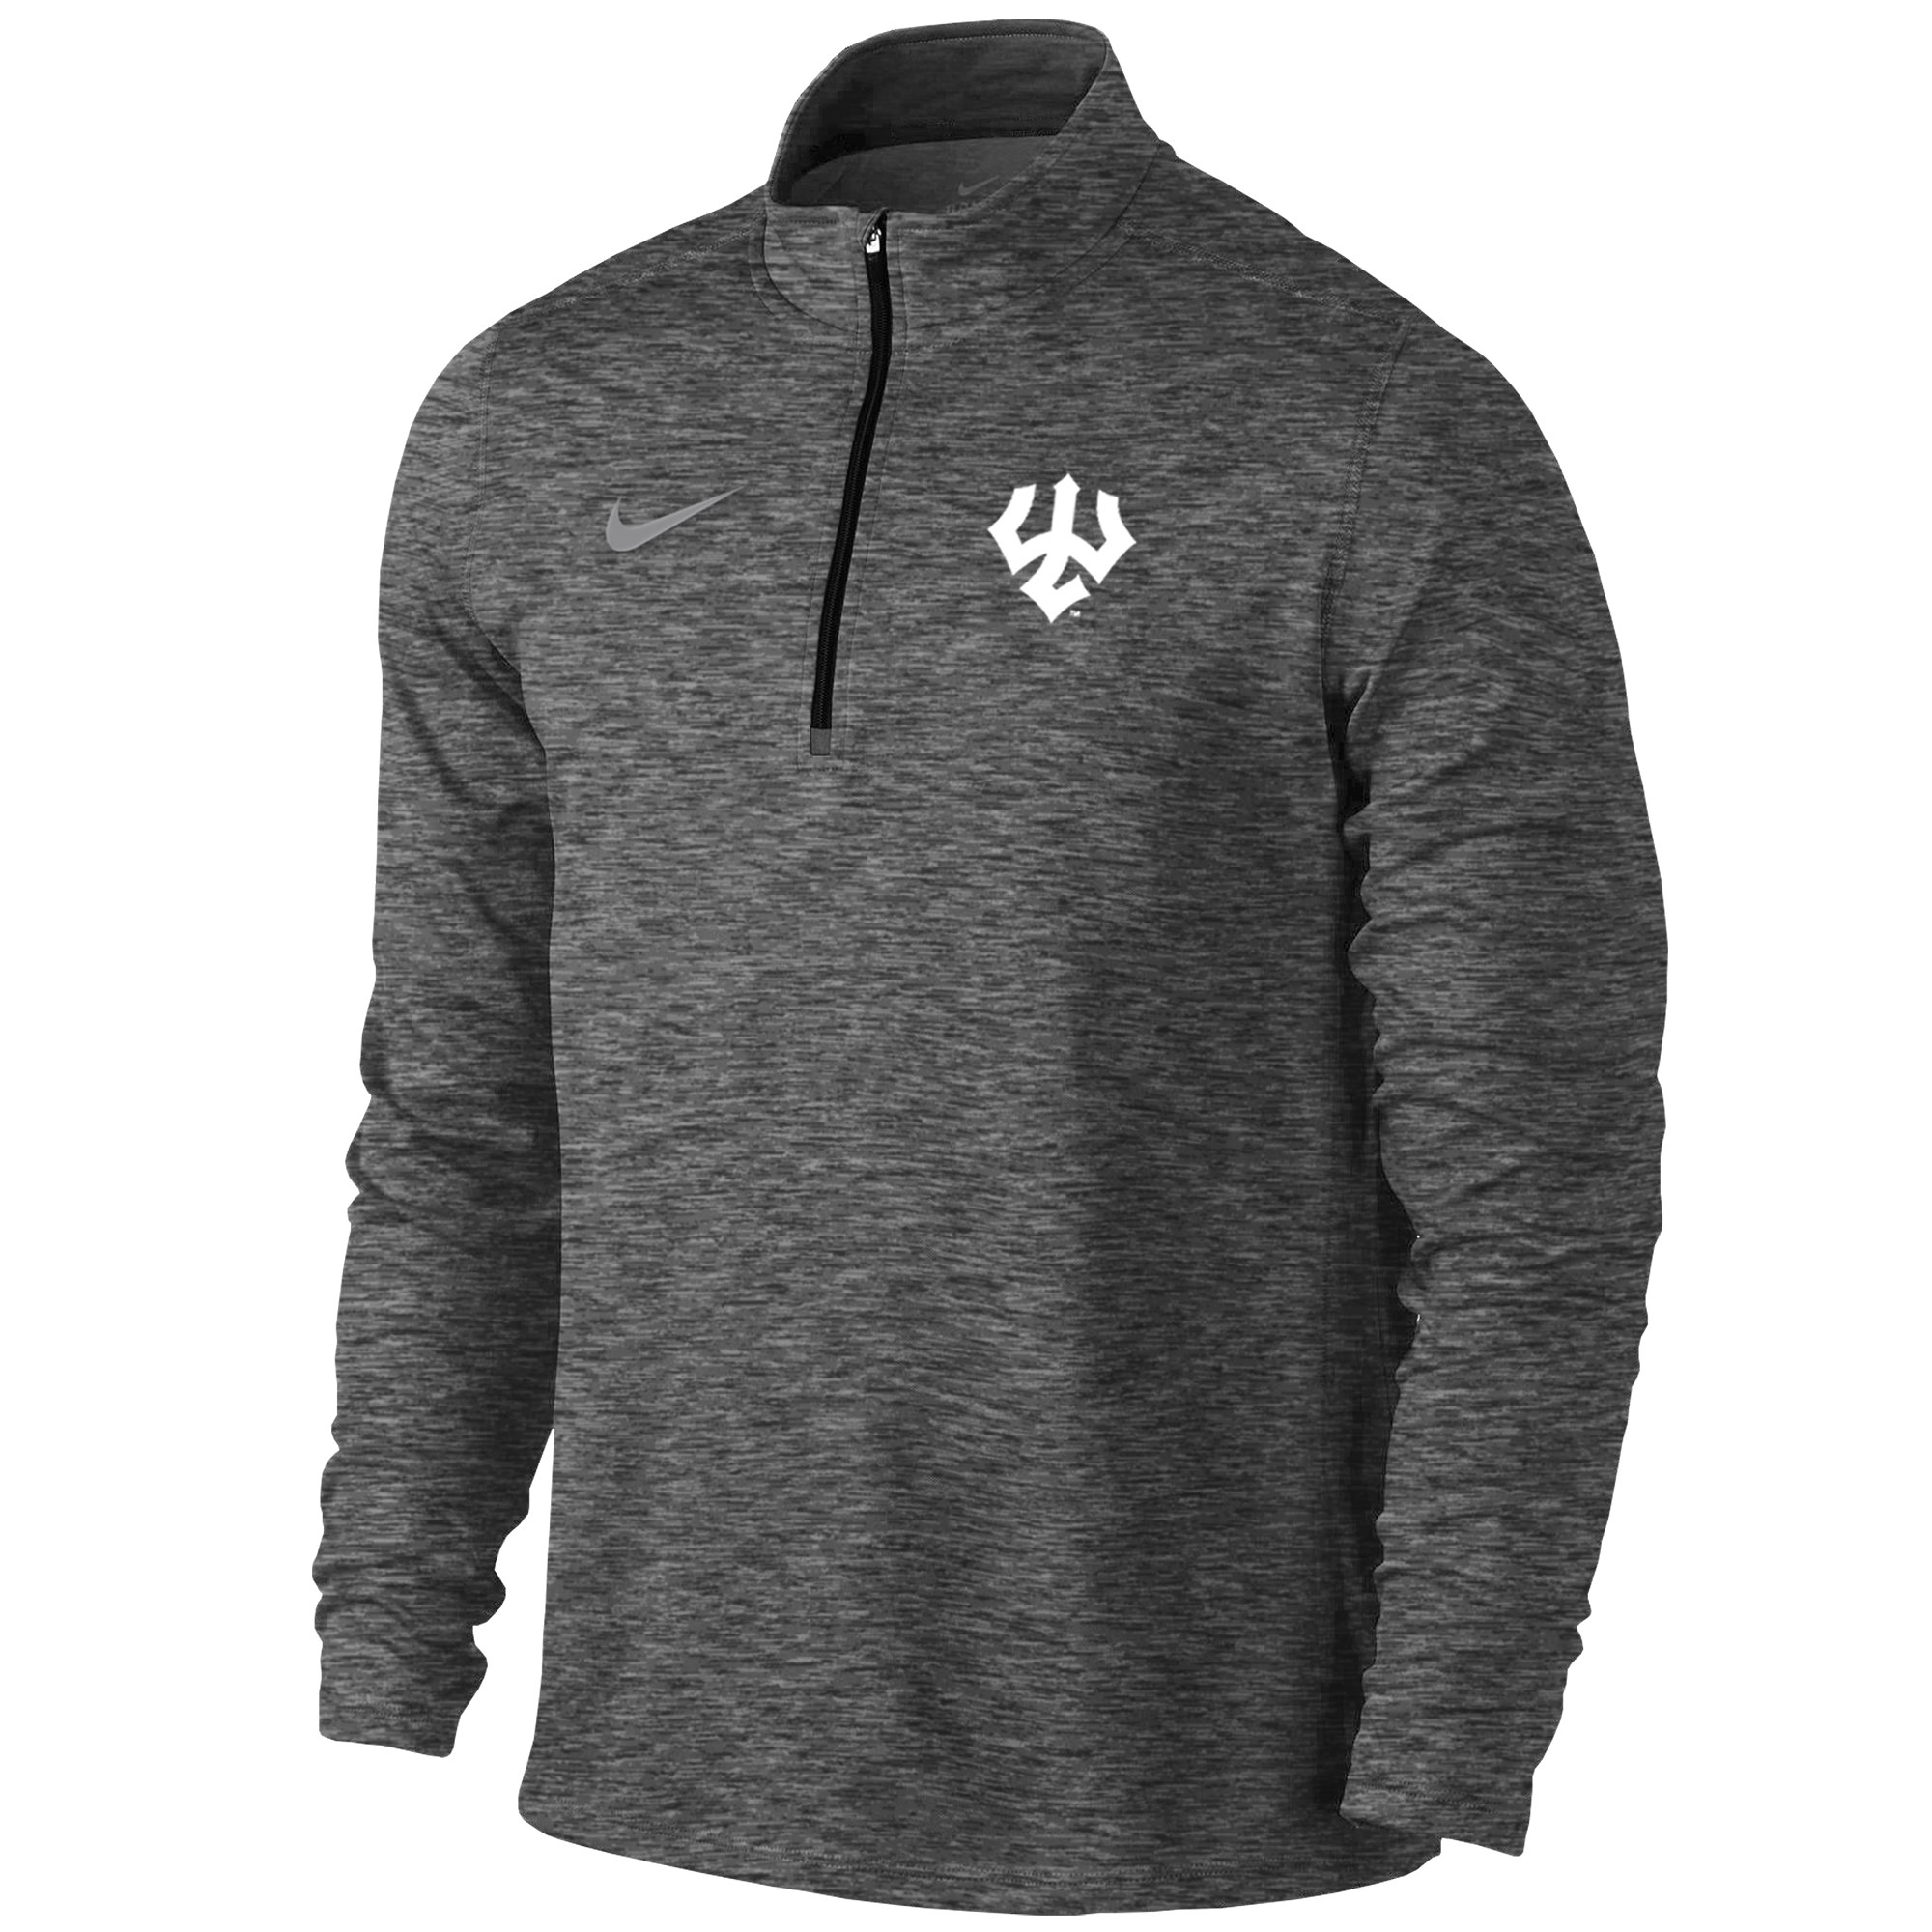 Cover Image For Nike Men's Element Quarter-Zip, Anthracite